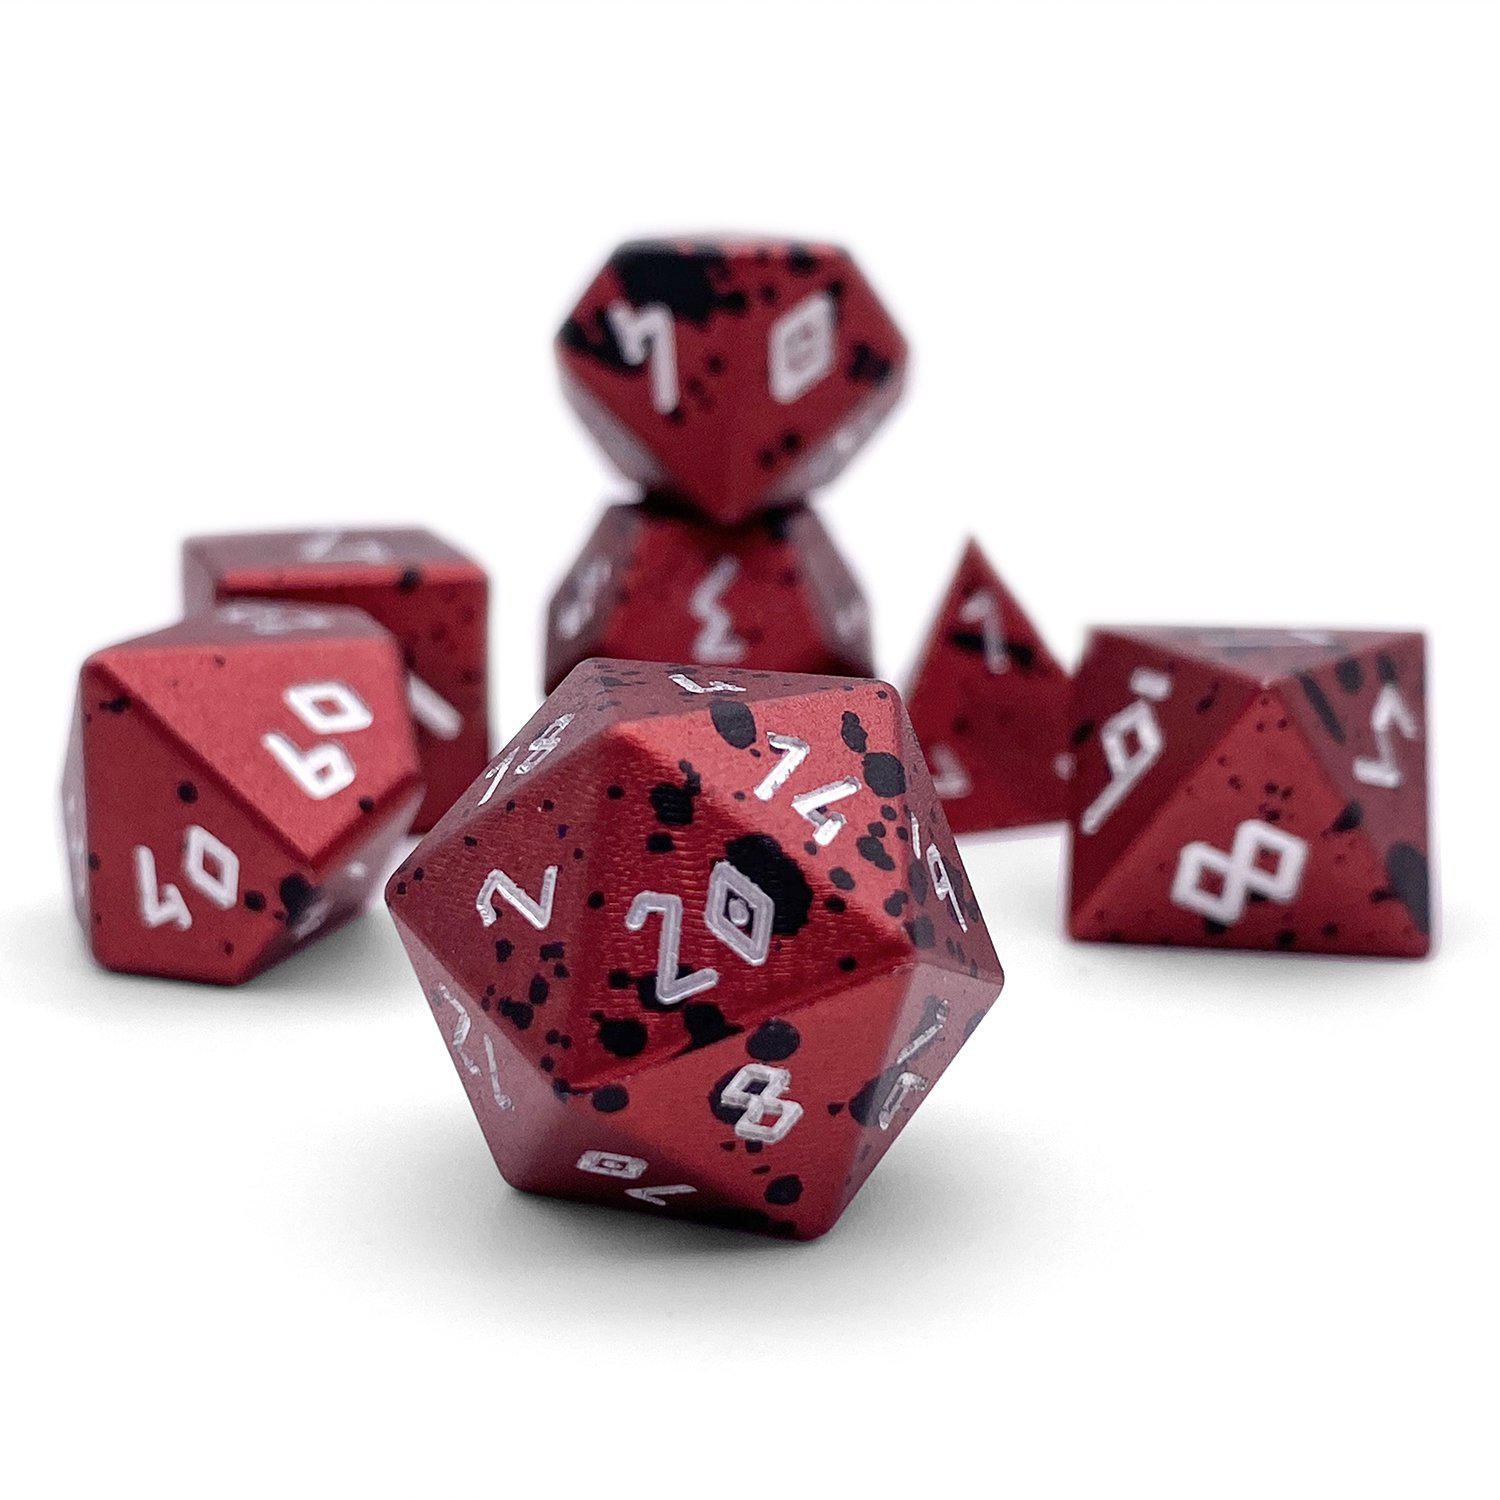 Berserker's Frenzy - Wondrous Dice Set of 7 RPG Dice by Norse Foundry Precision Polyhedral Dice Set